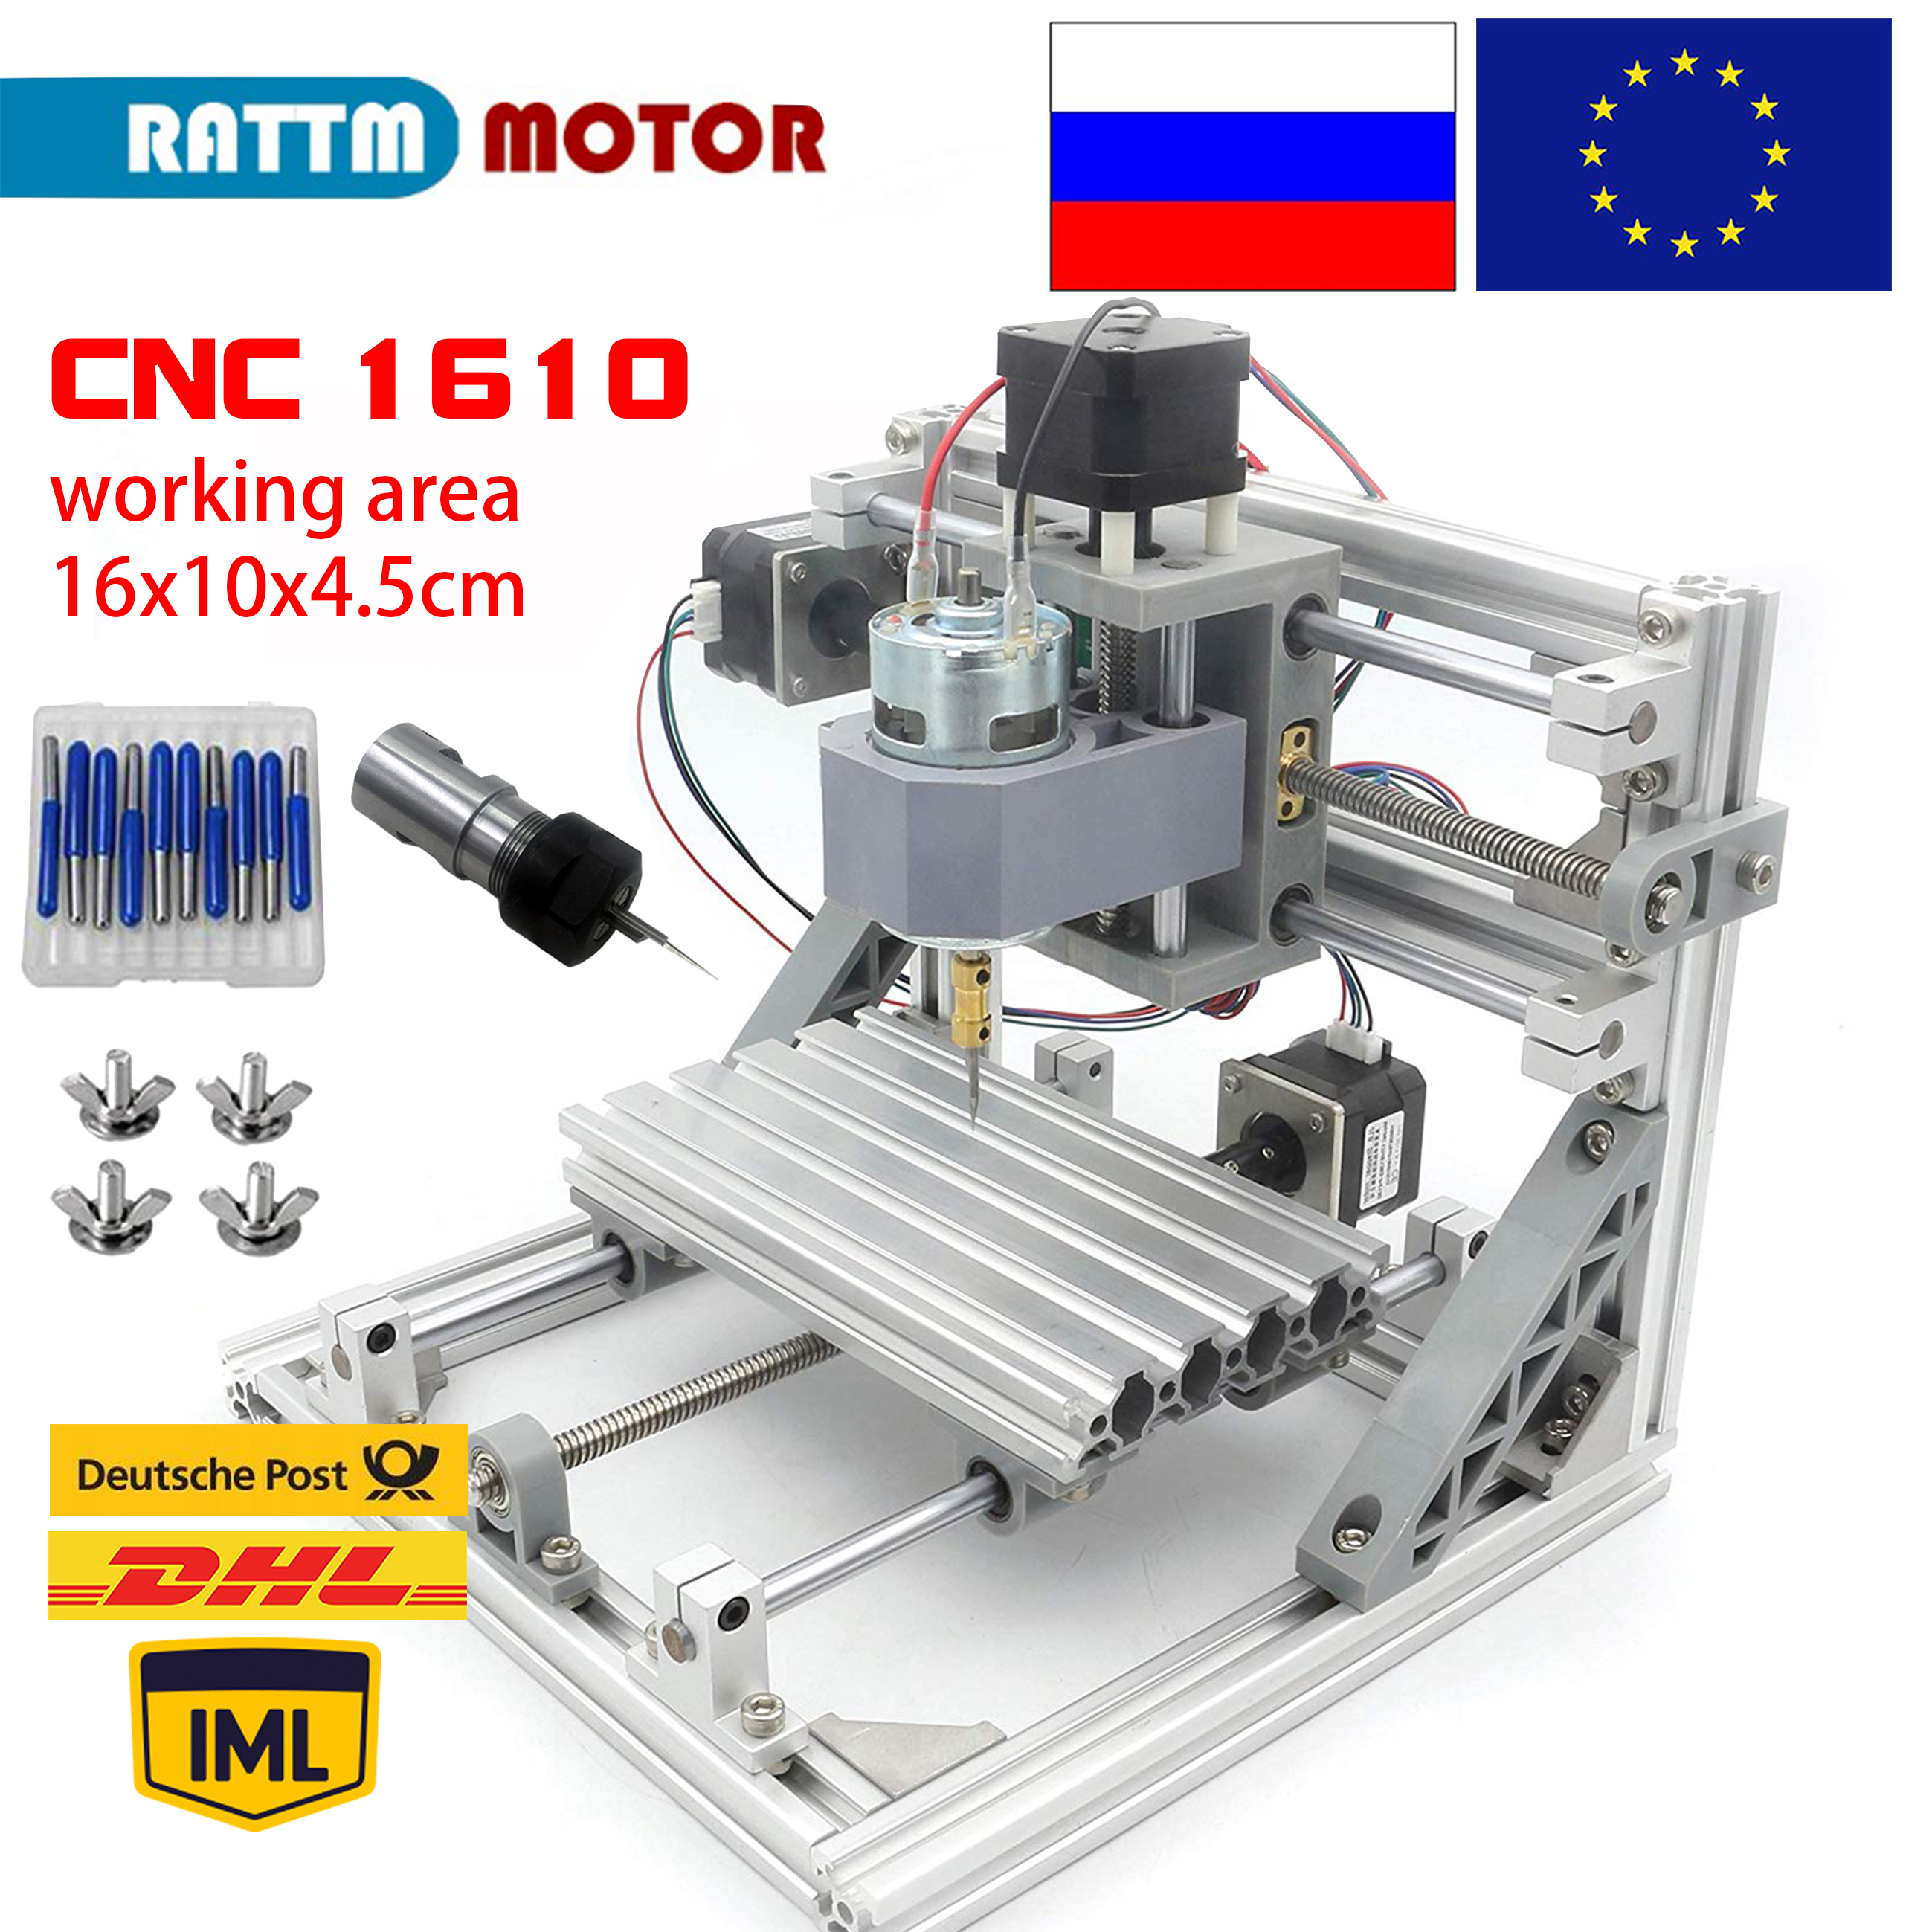 CNC1610, Mini Diy Cnc Wood Router, Working Area 160x100x45mm 3 Axis Wood Carving Machine,Grbl Control,